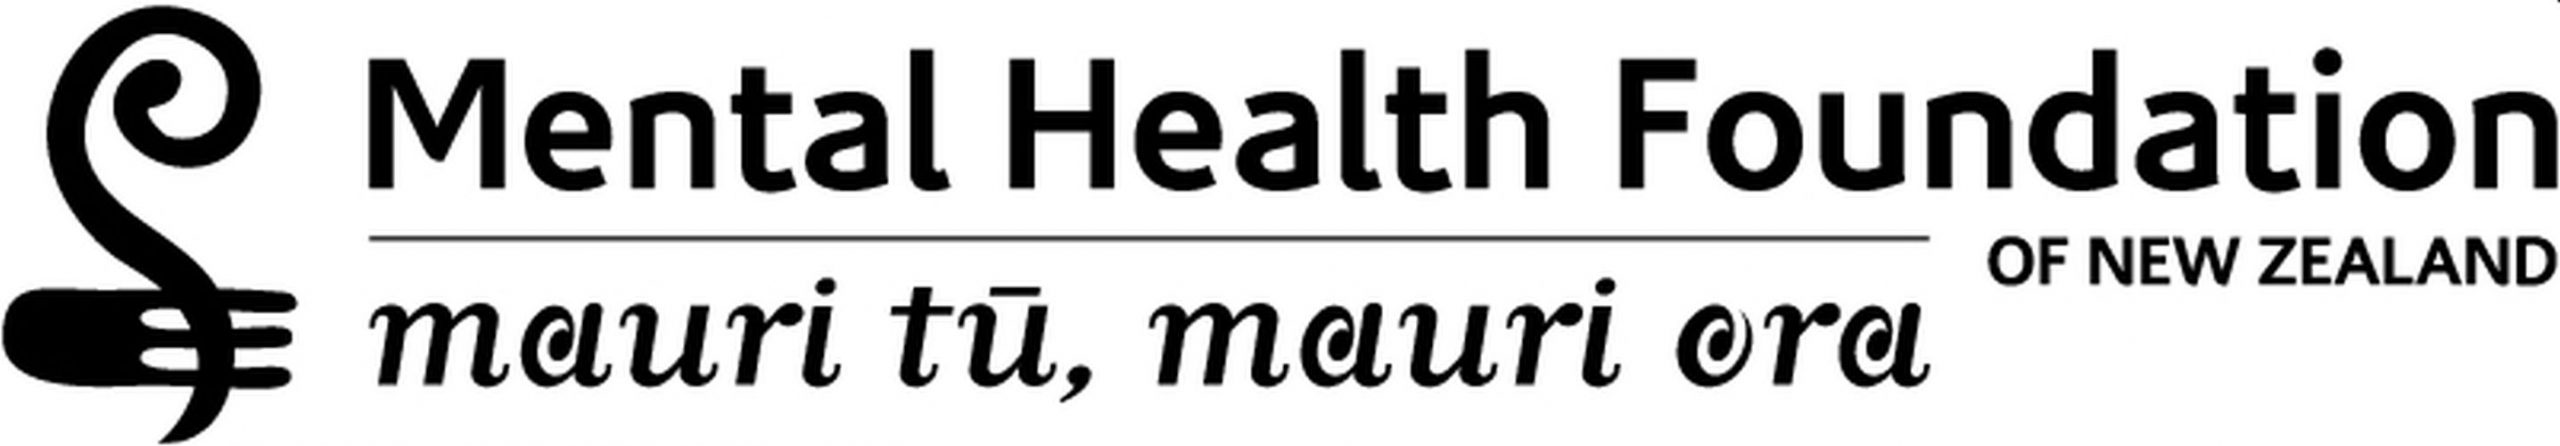 Mental Wellbeing Advice for COVID-19 from Mental Health Foundation